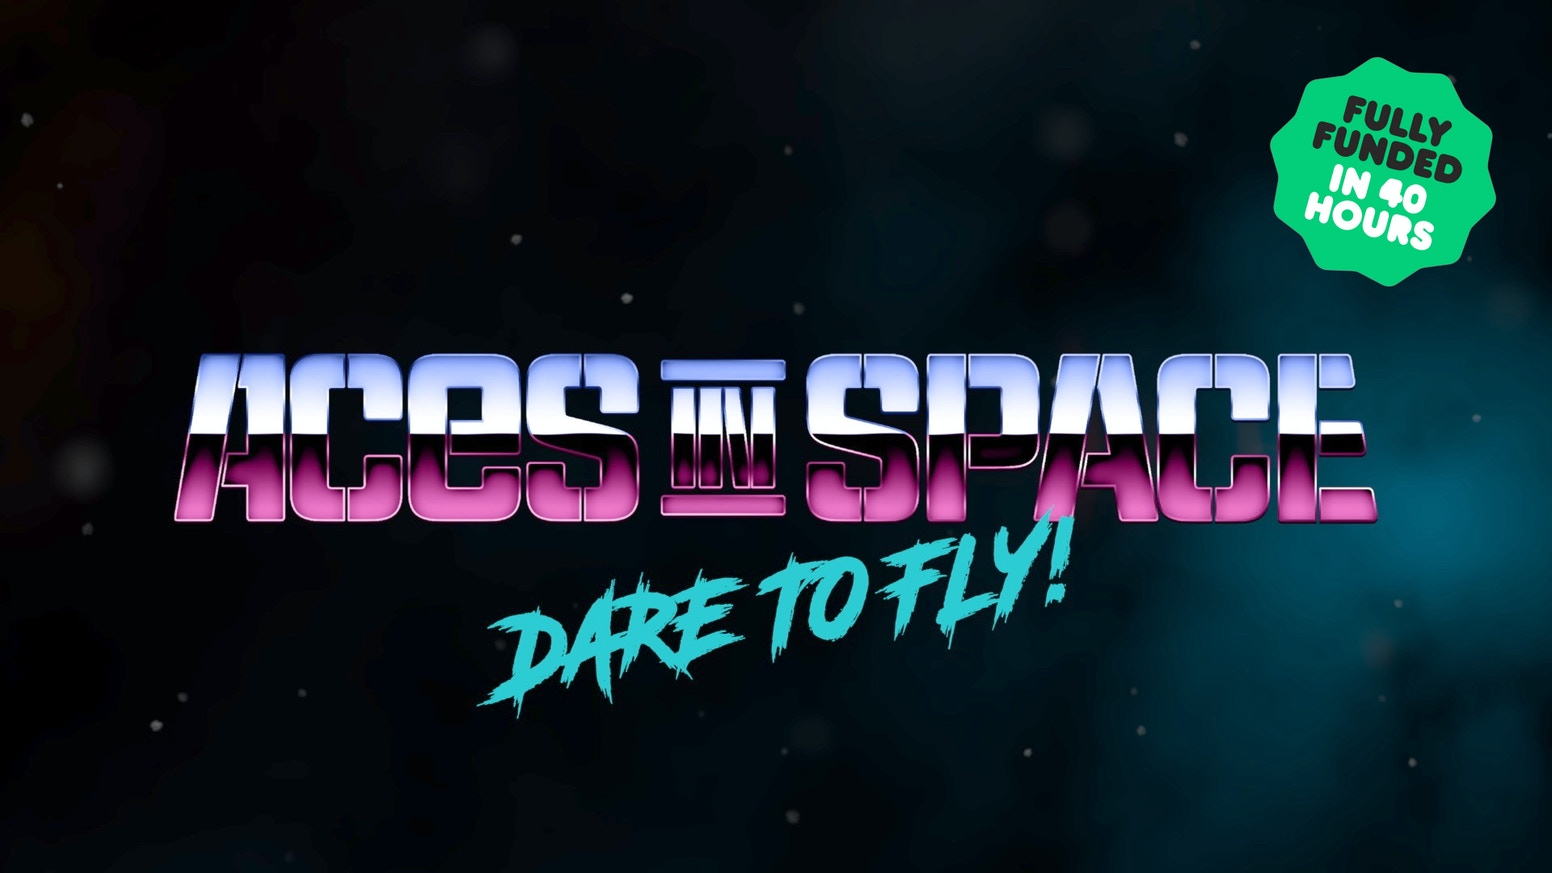 A Fate roleplaying game about a gang of space fighter pilots - half Battlestar Galactica, half Sons of Anarchy, full Social Media star!